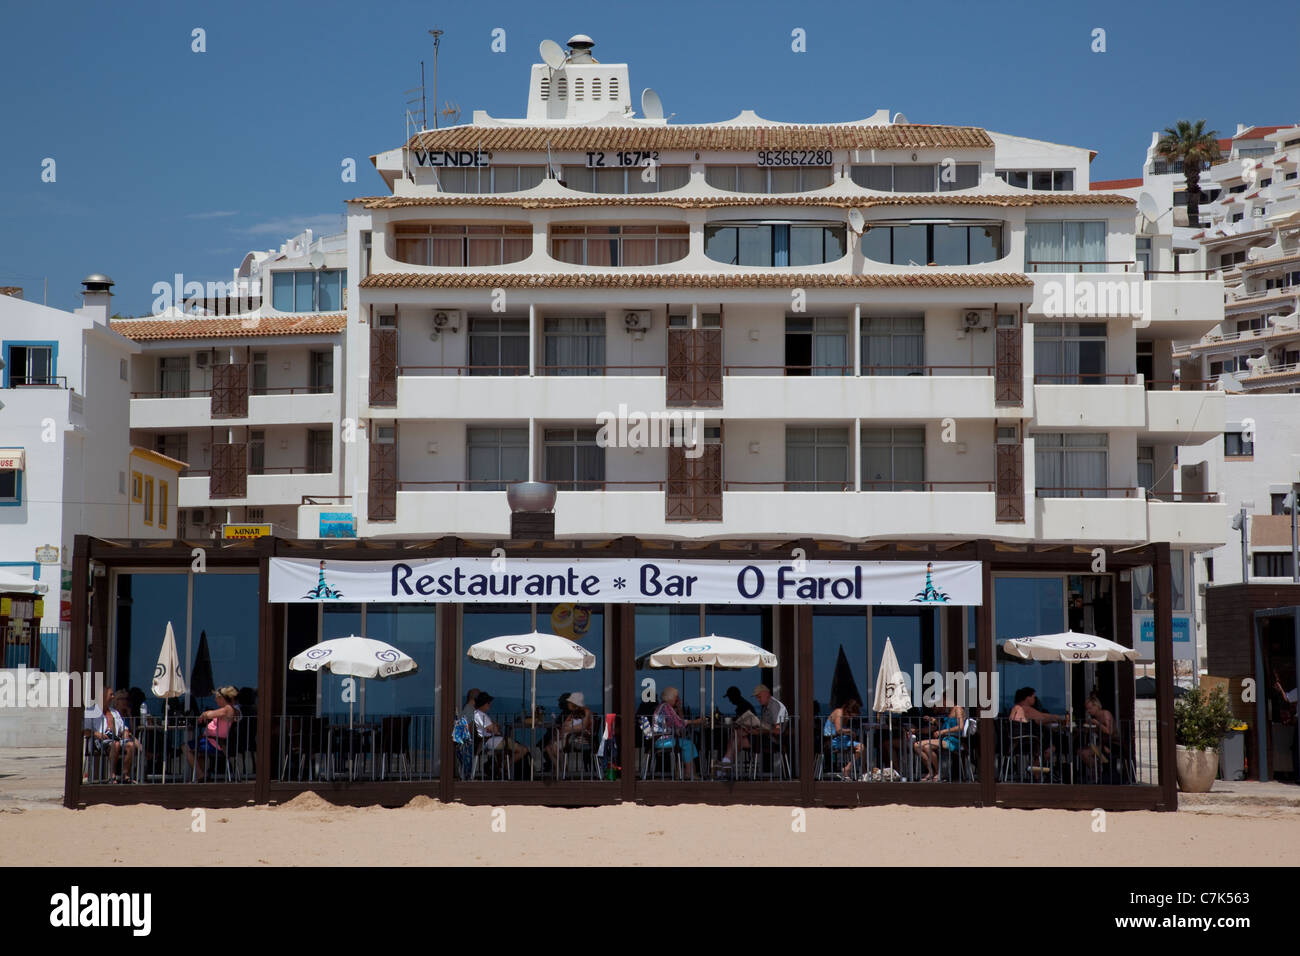 Portugal, Algarve, Albufeira, Beach & Restaurant - Stock Image